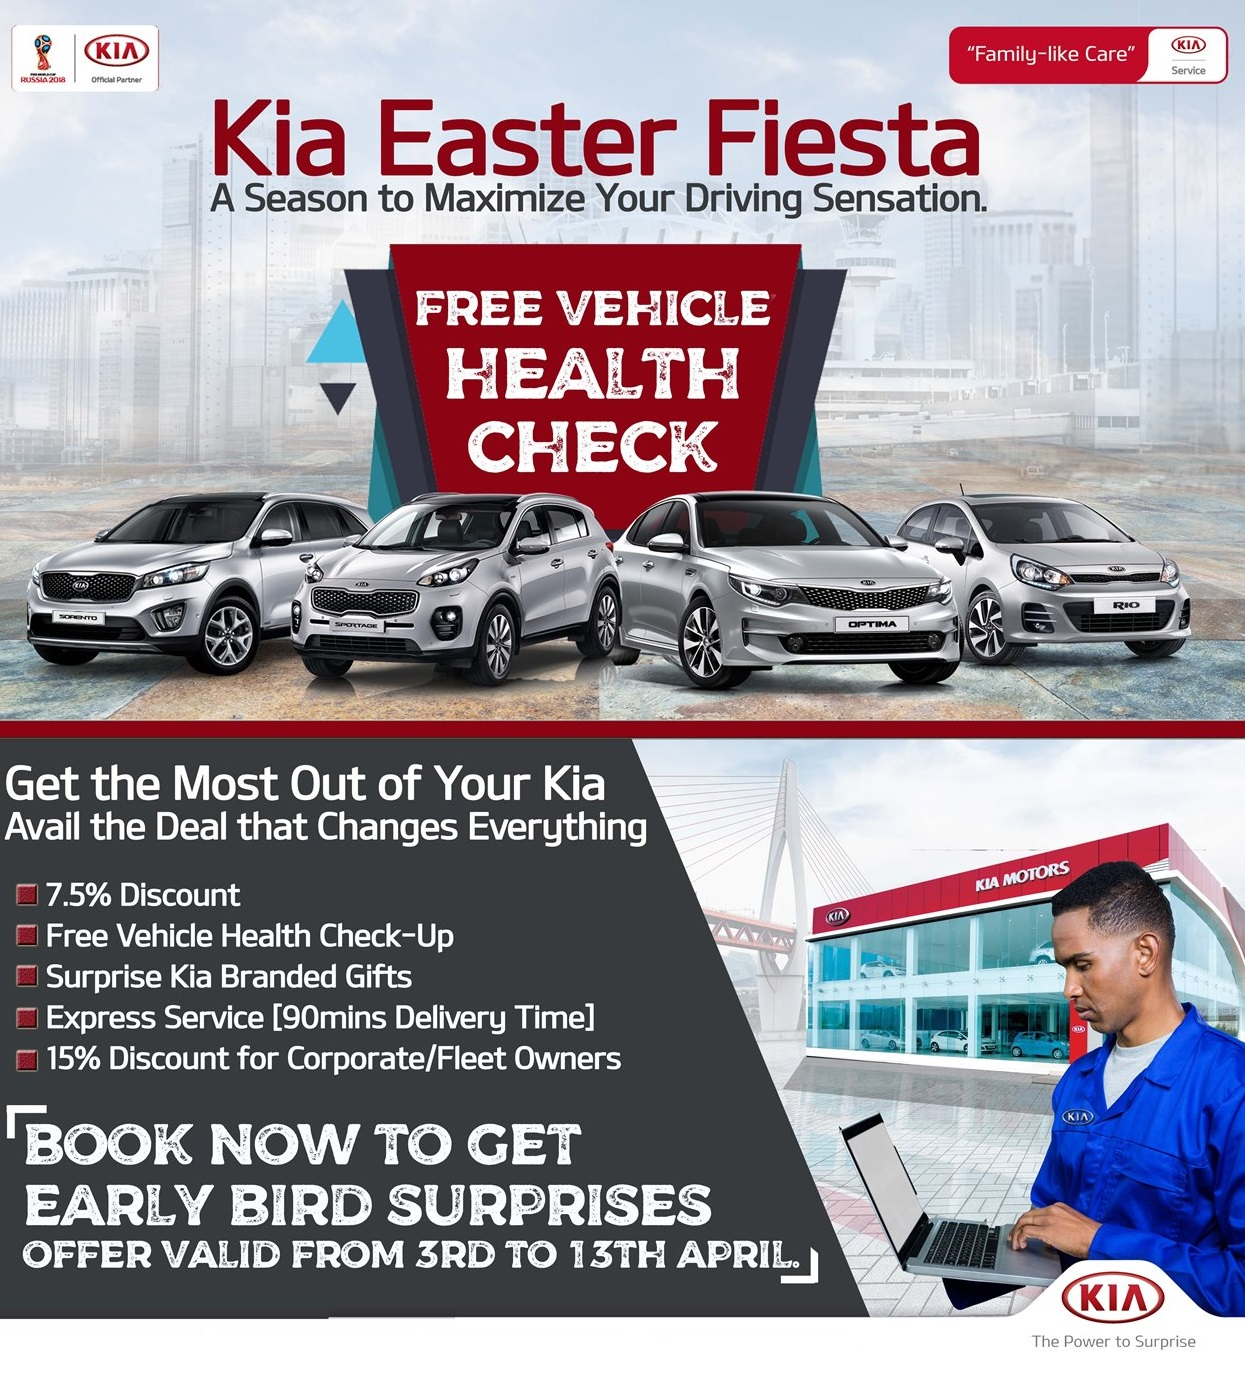 Kia Easter Fiesta! Come For Your FREE Vehicle Health Check, Surprise Gifts & More... - Brand Spur